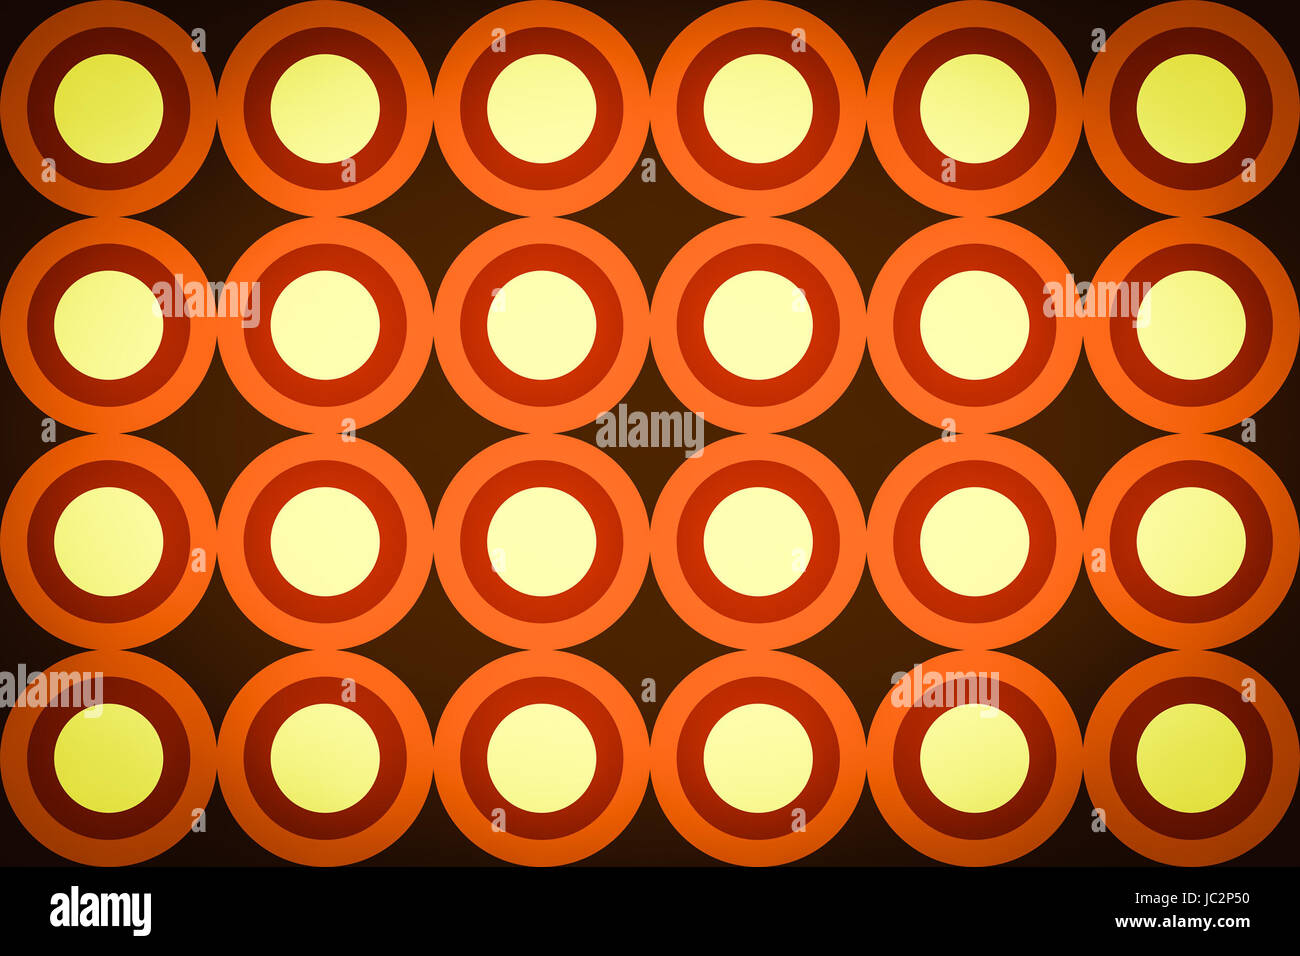 Vintage looking Acid sixties psychedelic background swinging London style - Stock Image